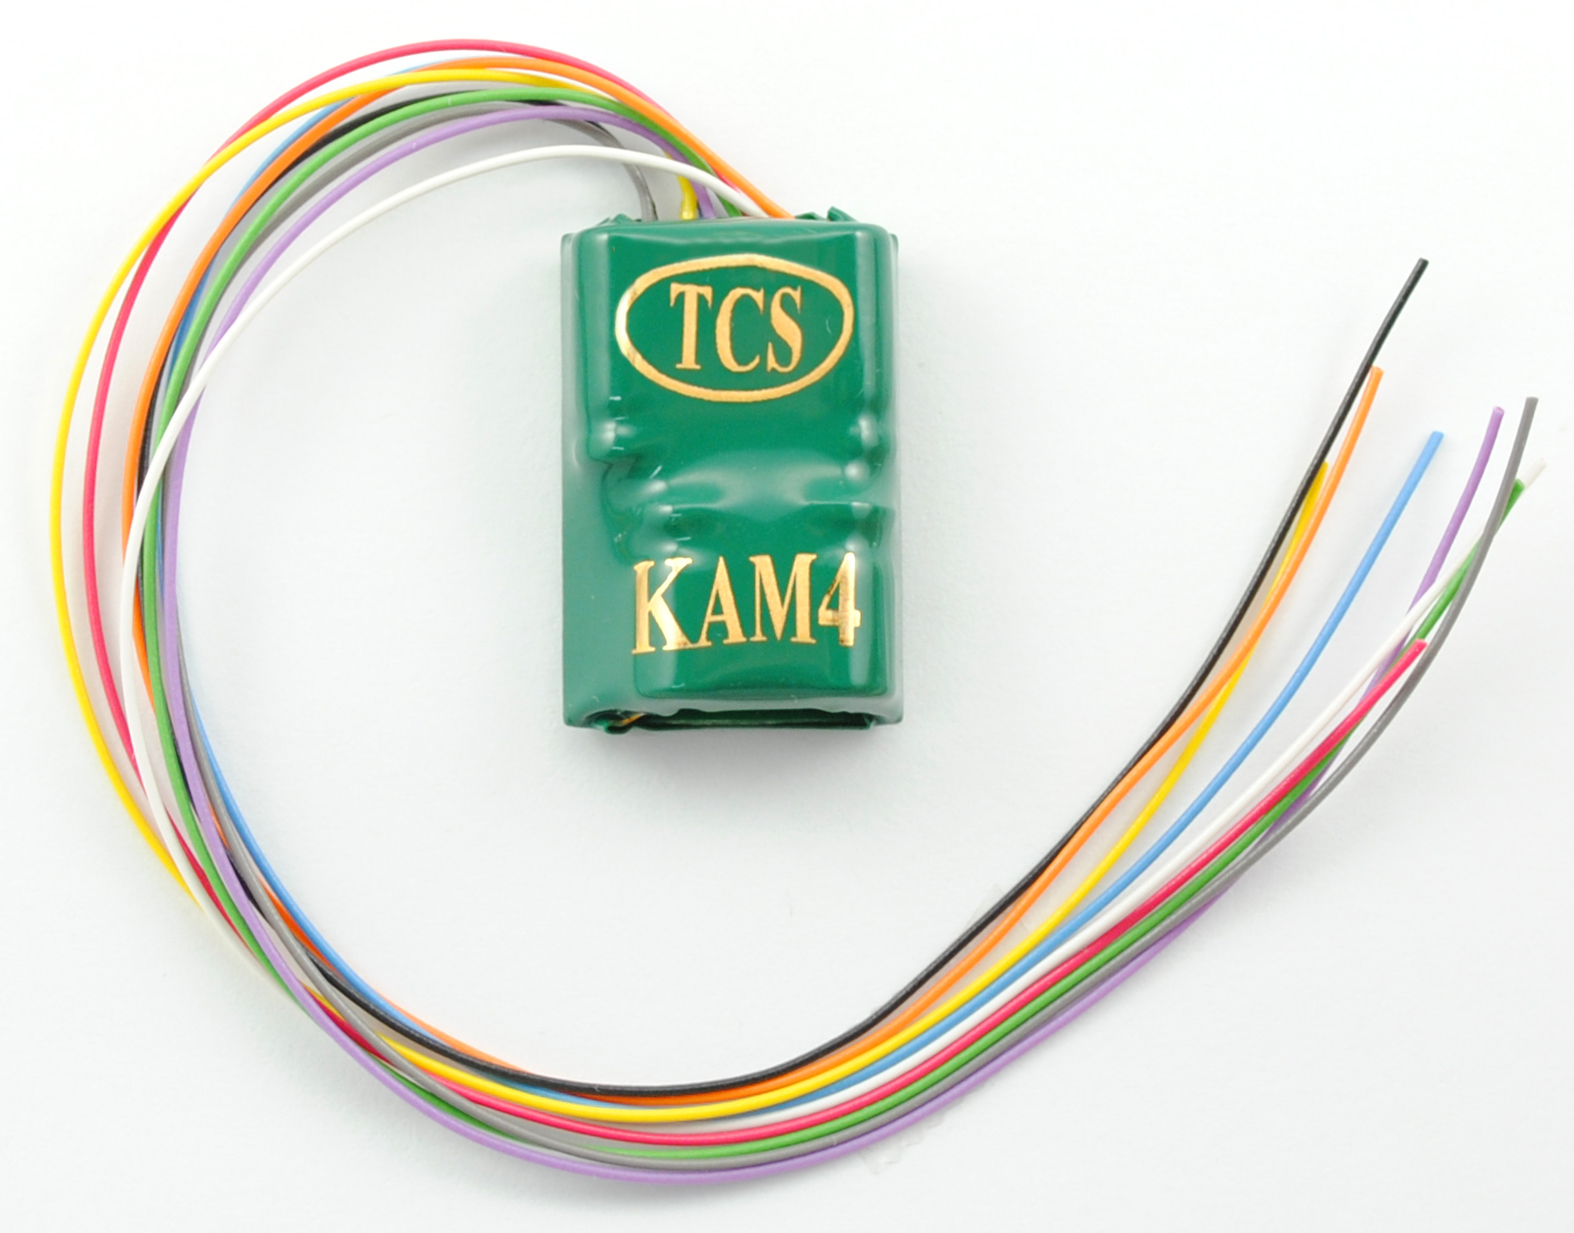 Train Control Systems 1485 KAM4 WARDWIRE KAM4 This is Train Control Systems 1485 KAM4 WARDWIRE KAM4. KAM4 4-function wired DCC decoder with built-in Keep-Alive™. A full featured, 4 function, hardwire decoder with a built in Keep-Alive™. The built-in KA2 Keep-Alive™ will keep your locomotive operating for 6-15 seconds without power (dirty track, bad contact, etc. etc.). Included is our auto-adjusting BEMF for outstanding slow speed performance. Also includes Quiet Drive for super quiet engine performance.Dimensions: 0.945 x 0.66 x 0.33 or 33.4mm x 16.7mm x 8.38 mmCondition: Factory New (C-9All original; unused; factory rubs and evidence of handling, shipping and factory test run.Standards for all toy train related accessory items apply to the visual appearance of the item and do not consider the operating functionality of the equipment.Condition and Grading Standards are subjective, at best, and are intended to act as a guide. )Operational Status: FunctionalThis item is brand new from the factory.Original Box: Yes (P-9May have store stamps and price tags. Has inner liners.)Manufacturer: Train Control SystemsModel Number: 1485MSRP: $60.95Scale/Era: HO ModernModel Type: AccessoriesAvailability: Ships in 2 Business Days!The Trainz SKU for this item is P11983869. Track: 11983869 - No Location Assigned - 001 - TrainzAuctionGroup00UNK - TDIDUNK